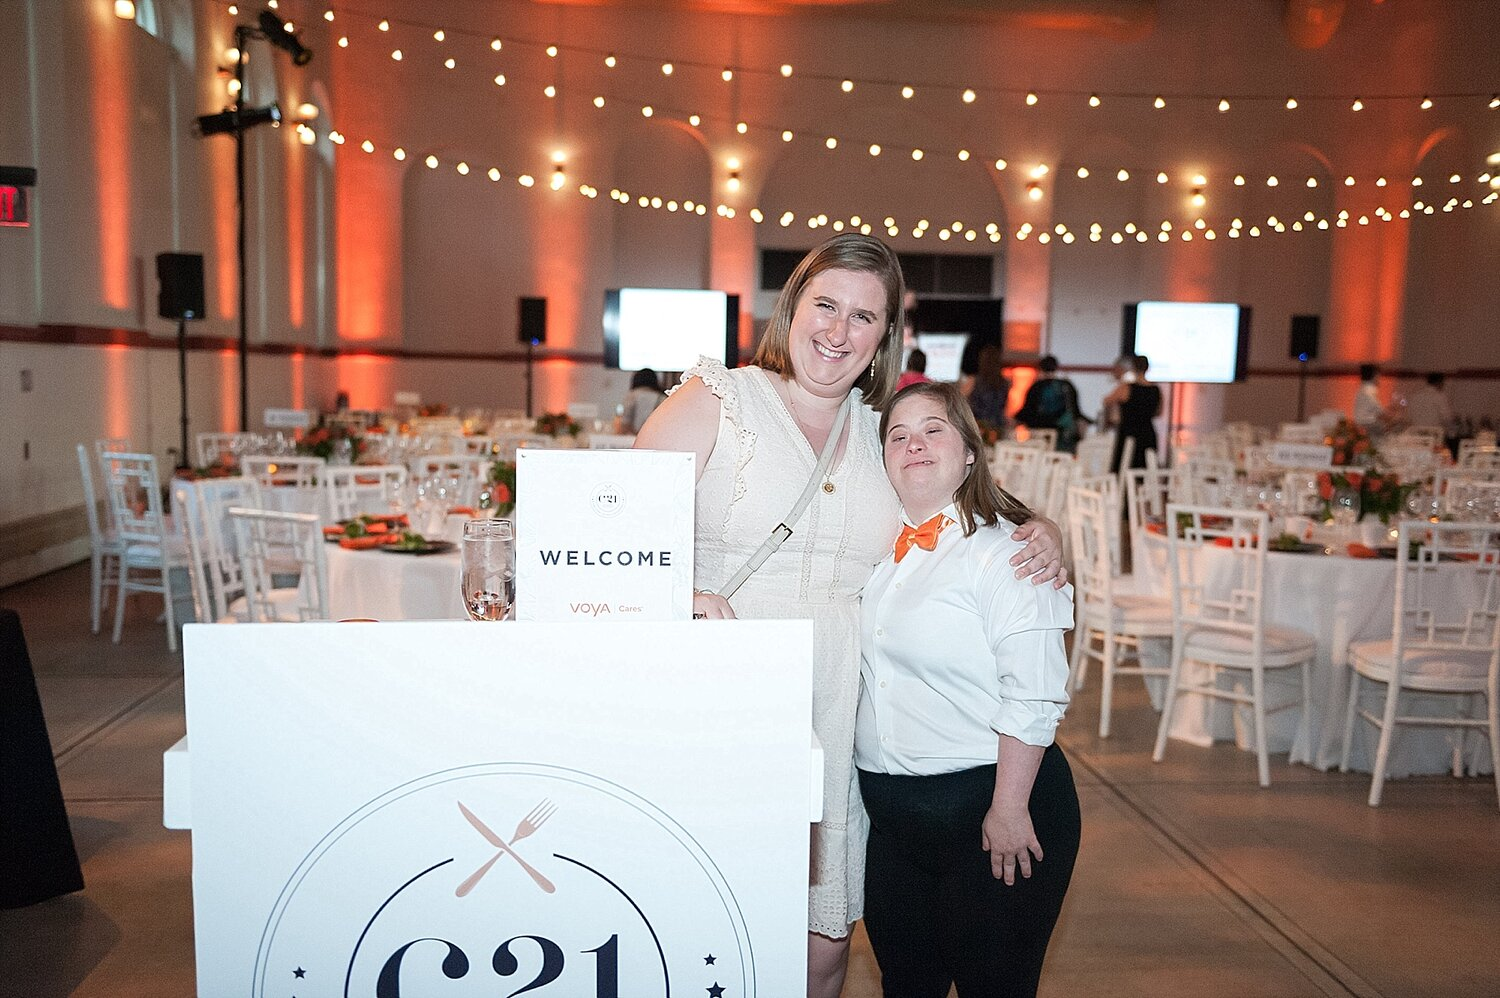 Wendy Zook Photography | NDSS Events, Down Syndrome Awareness, NDSS C21 DC 2019, NDSS C21, Down Syndrome awareness event, NDSS photographer, Washington DC NDSS Event, Washington DC Down Syndrome Awareness